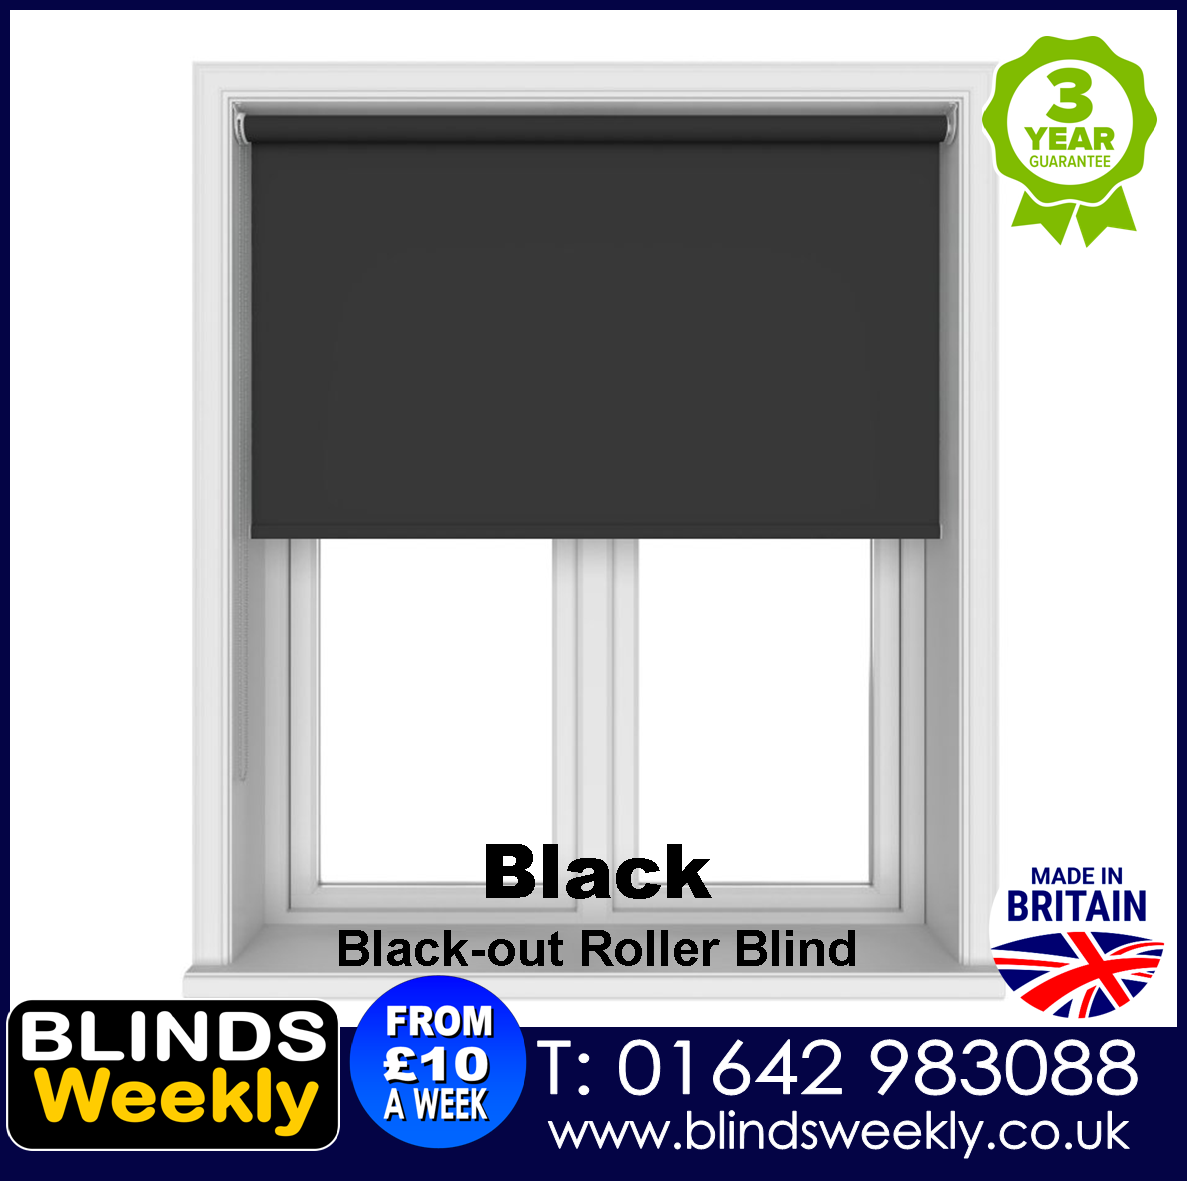 Blinds Weekly Blackout Roller Blind - BLACK